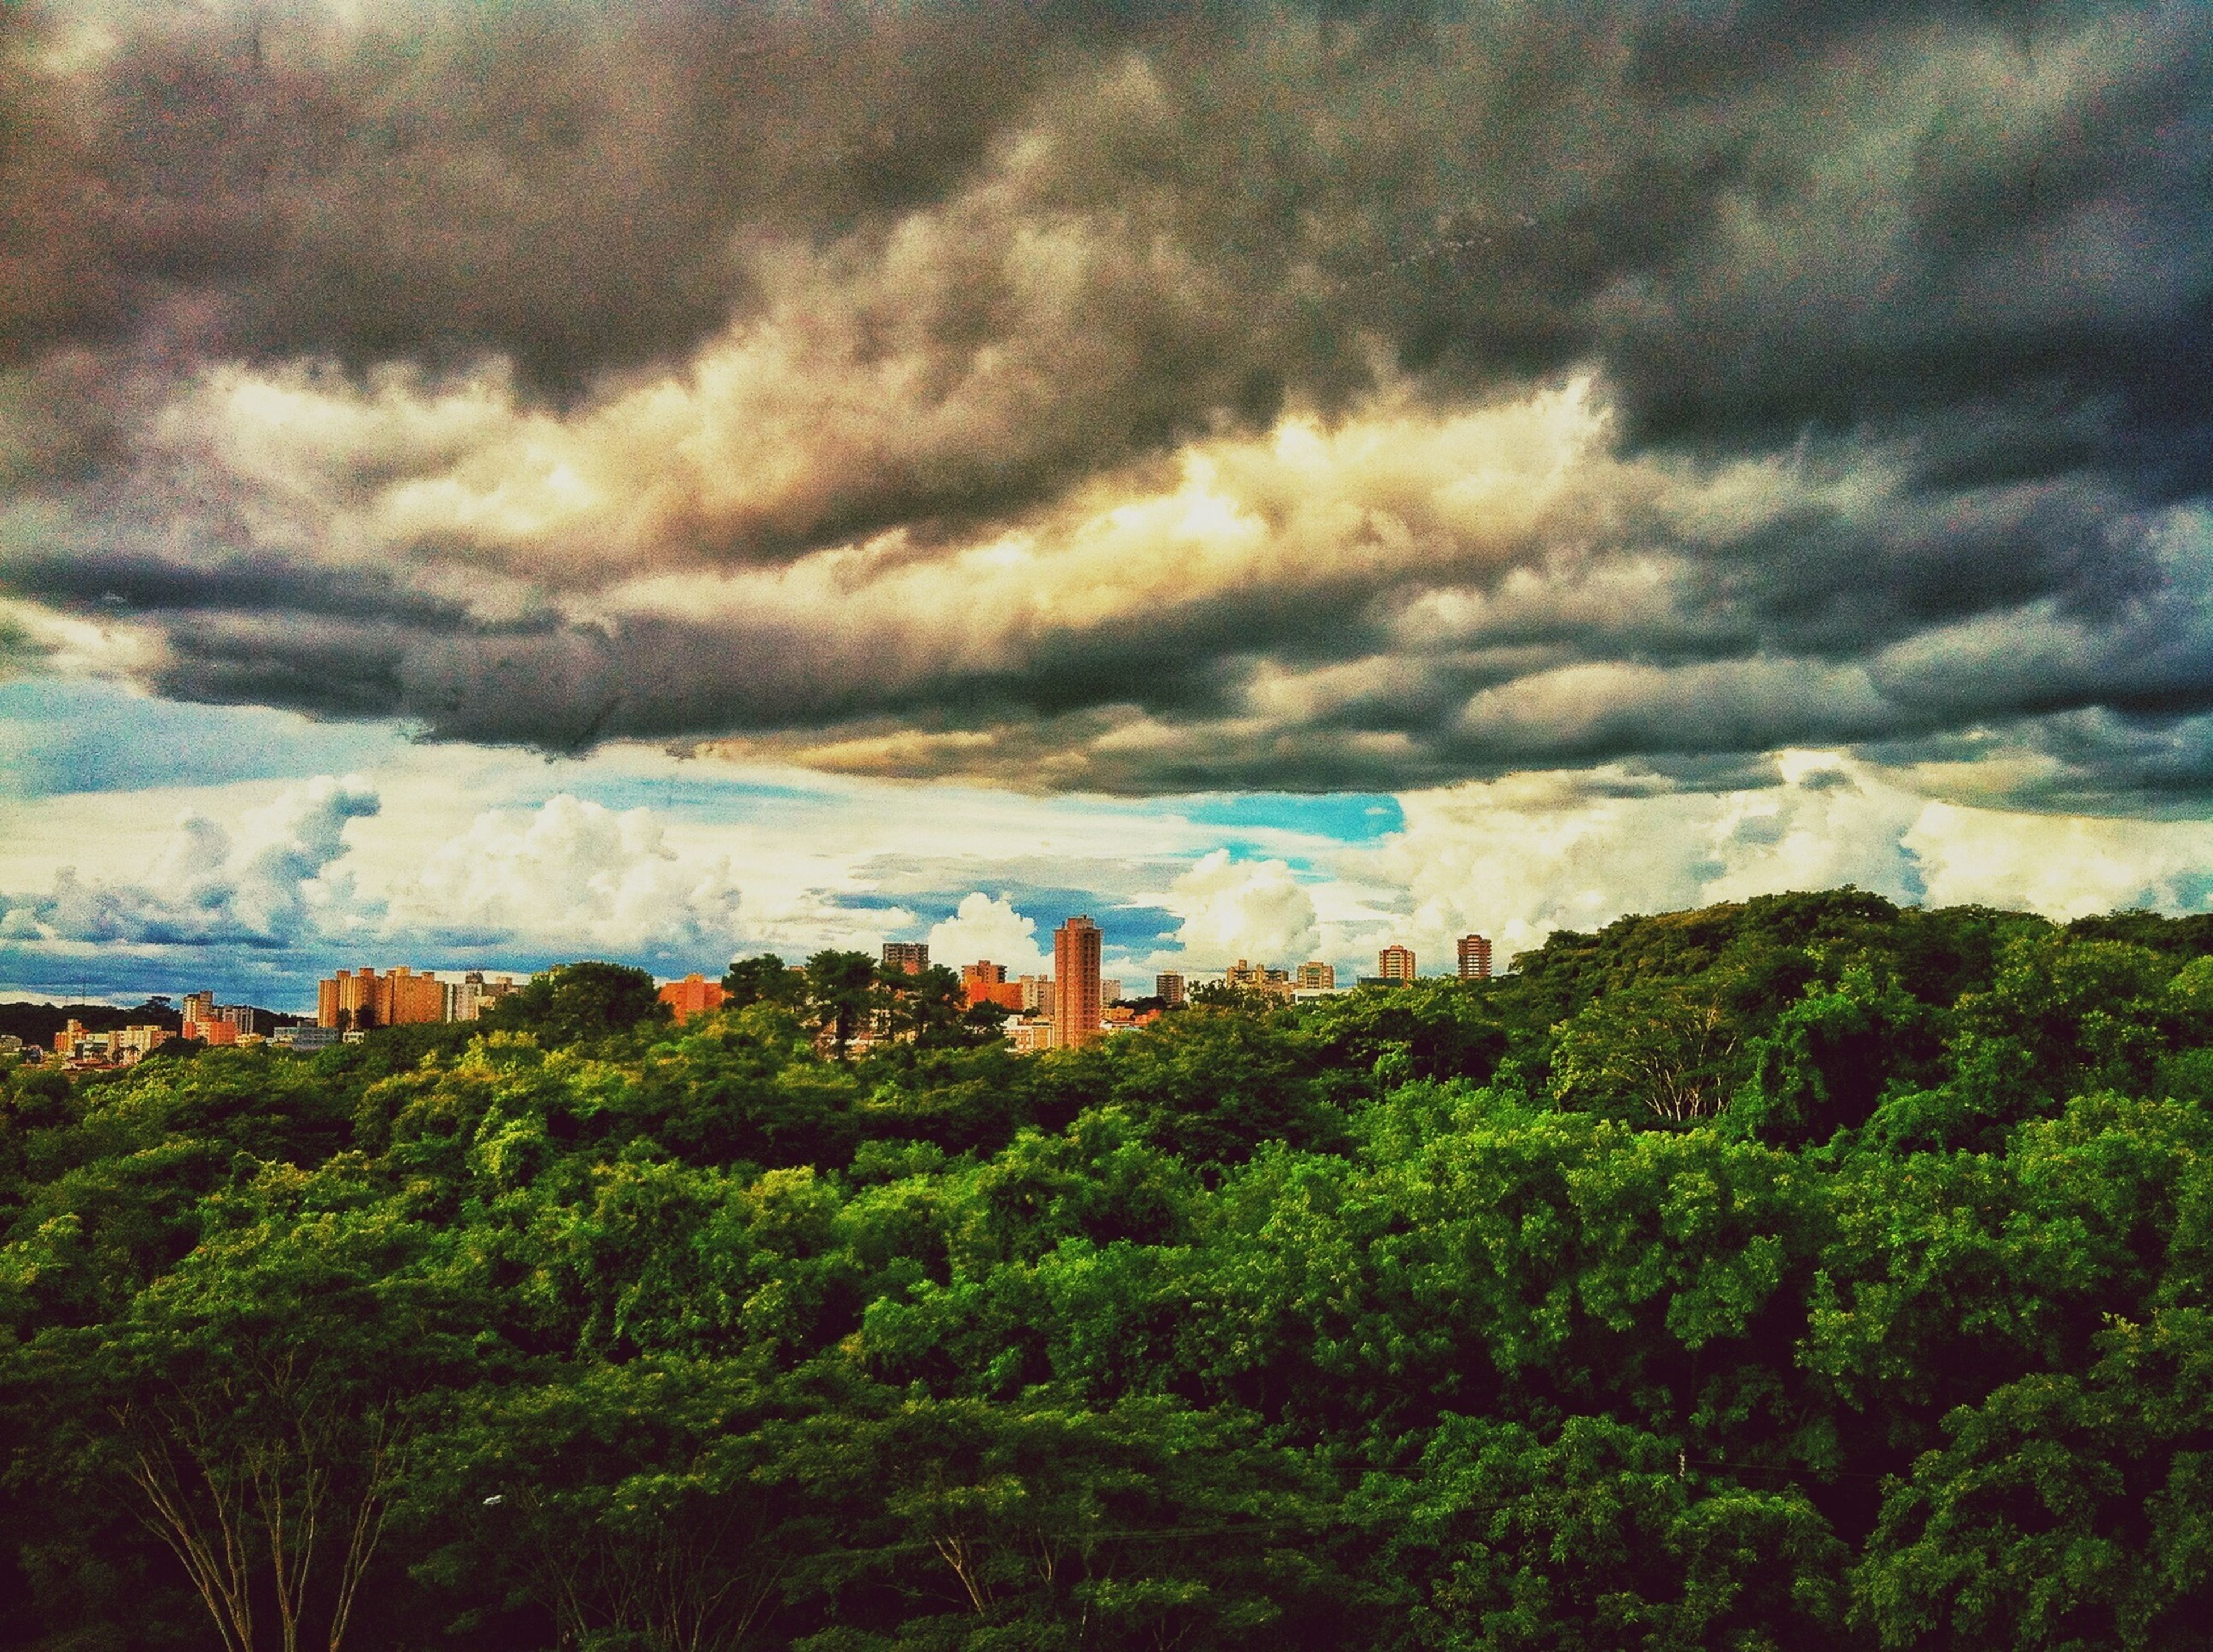 sky, cloud - sky, cloudy, building exterior, architecture, built structure, weather, tree, overcast, cloud, nature, growth, beauty in nature, scenics, storm cloud, landscape, tranquility, plant, tranquil scene, outdoors